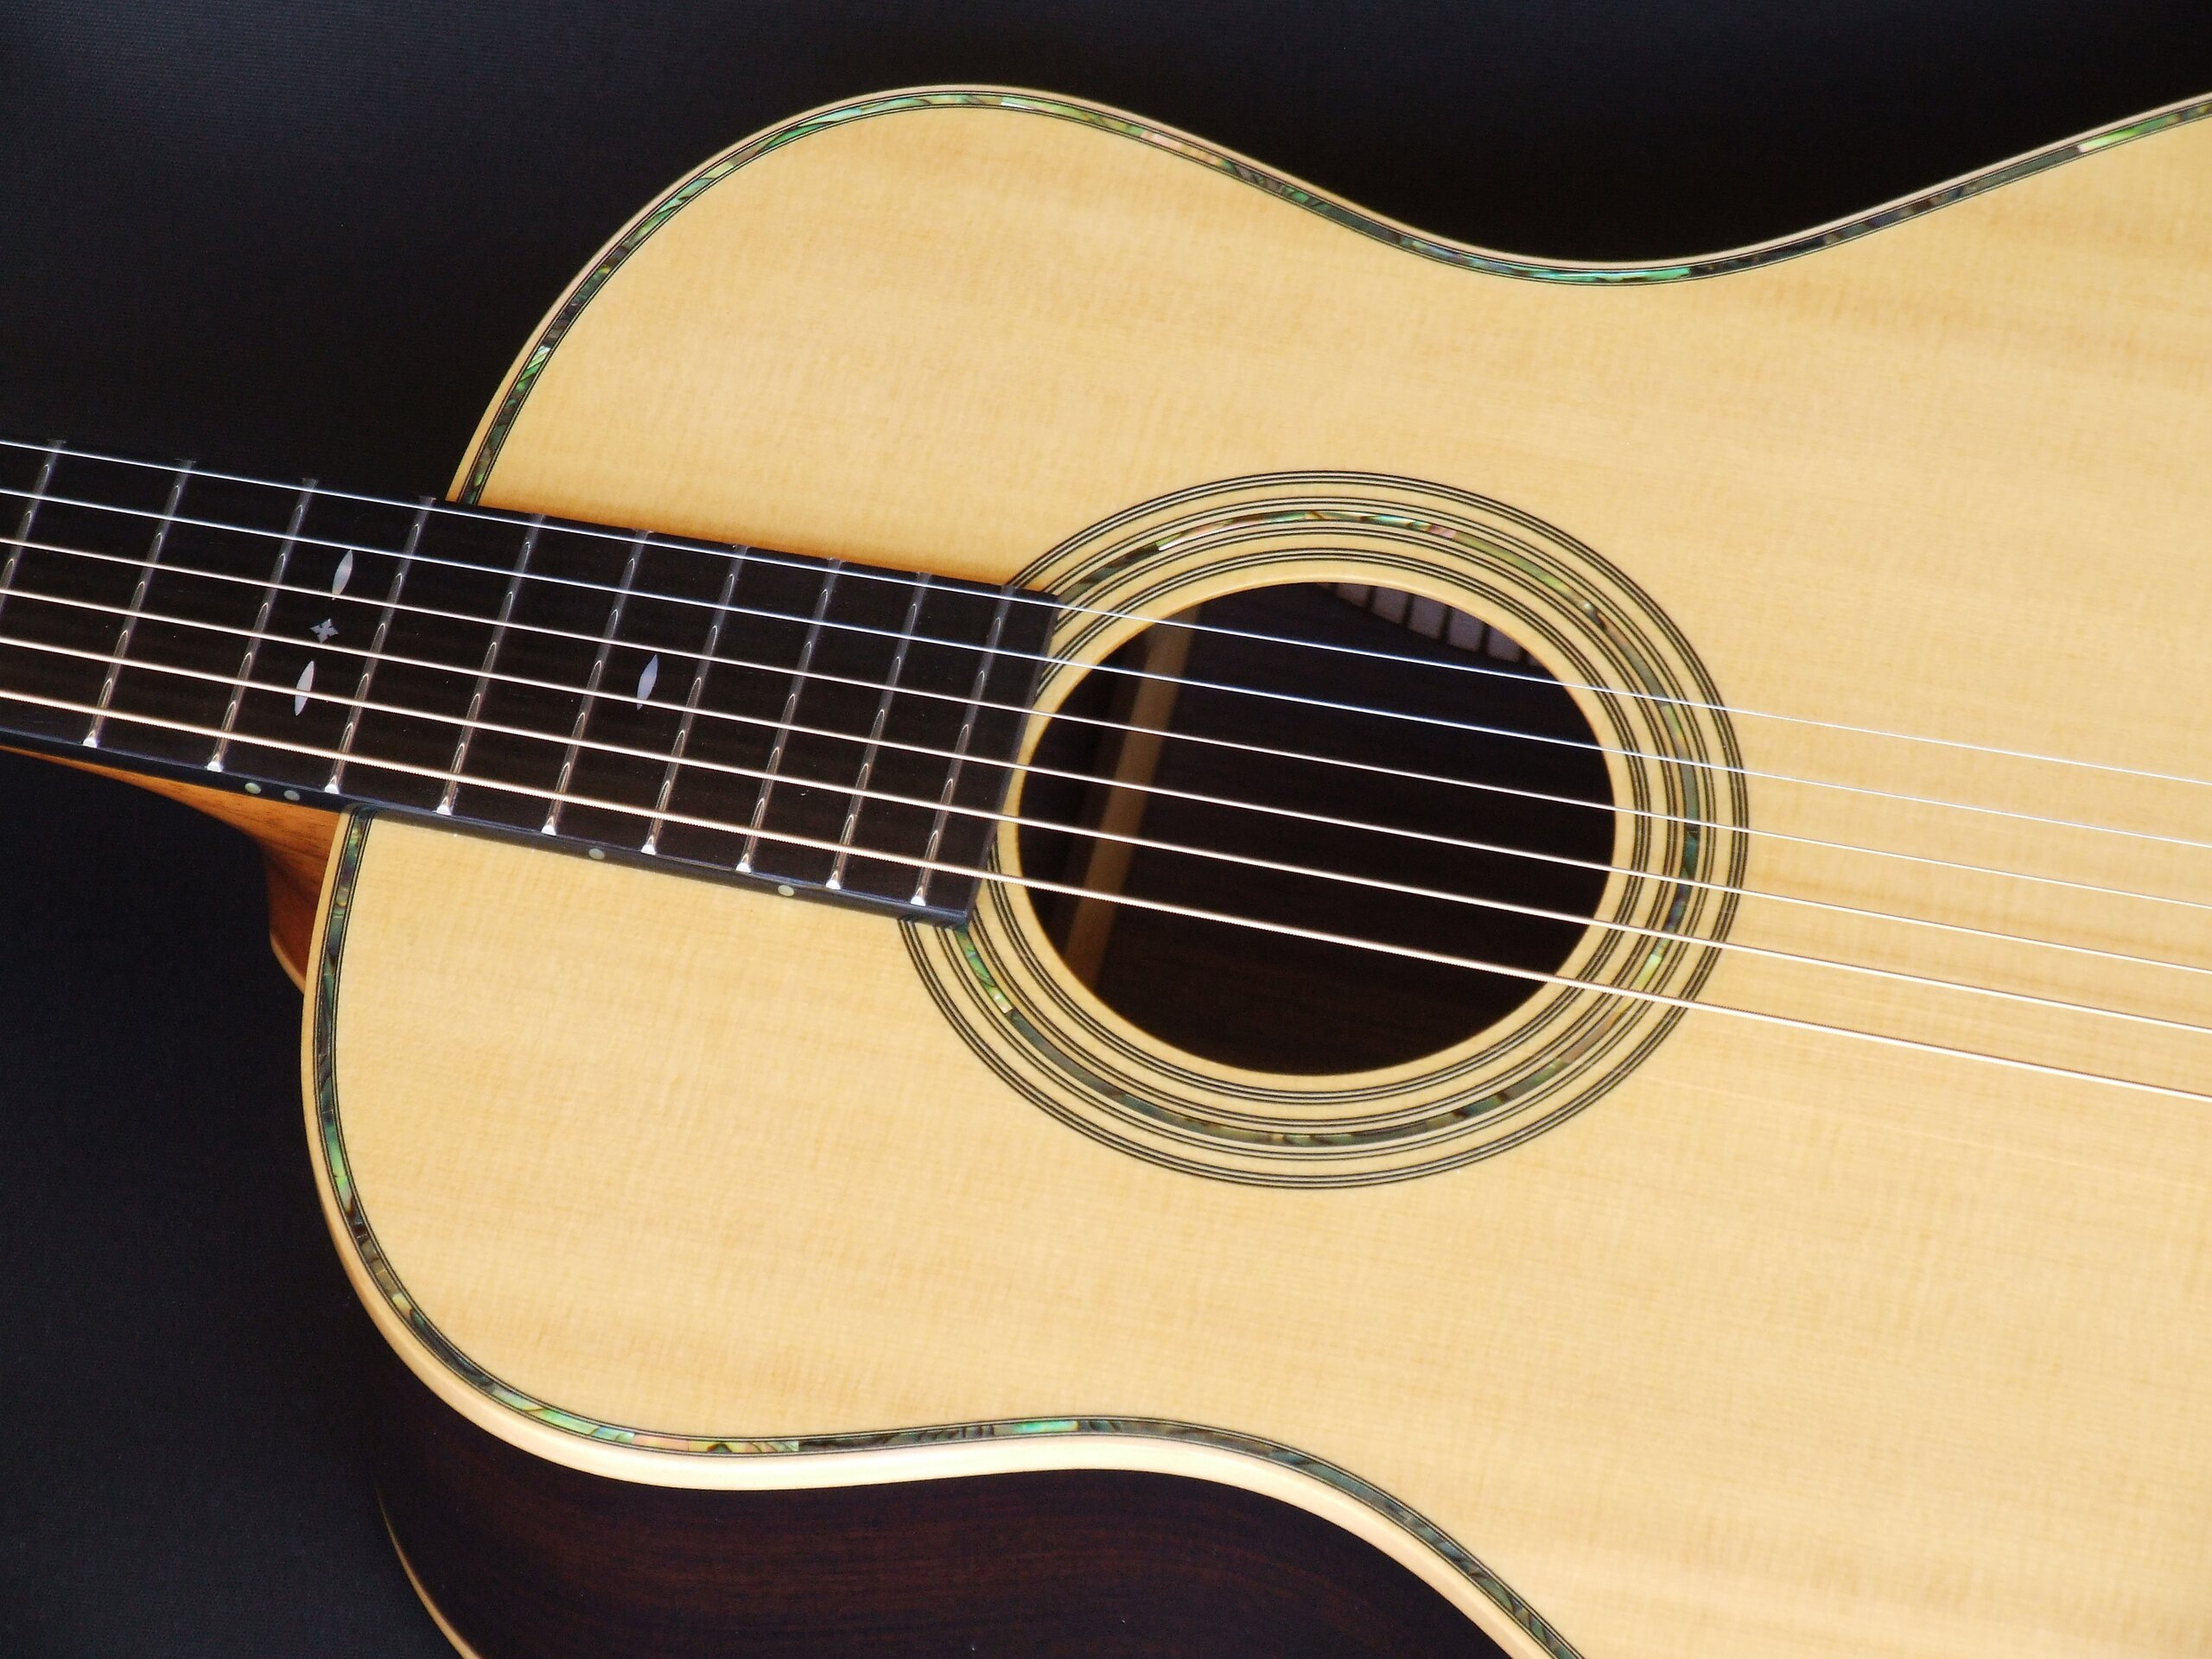 Rosette and abalone purfling on a medium retro sized guitar by Trevor Gore